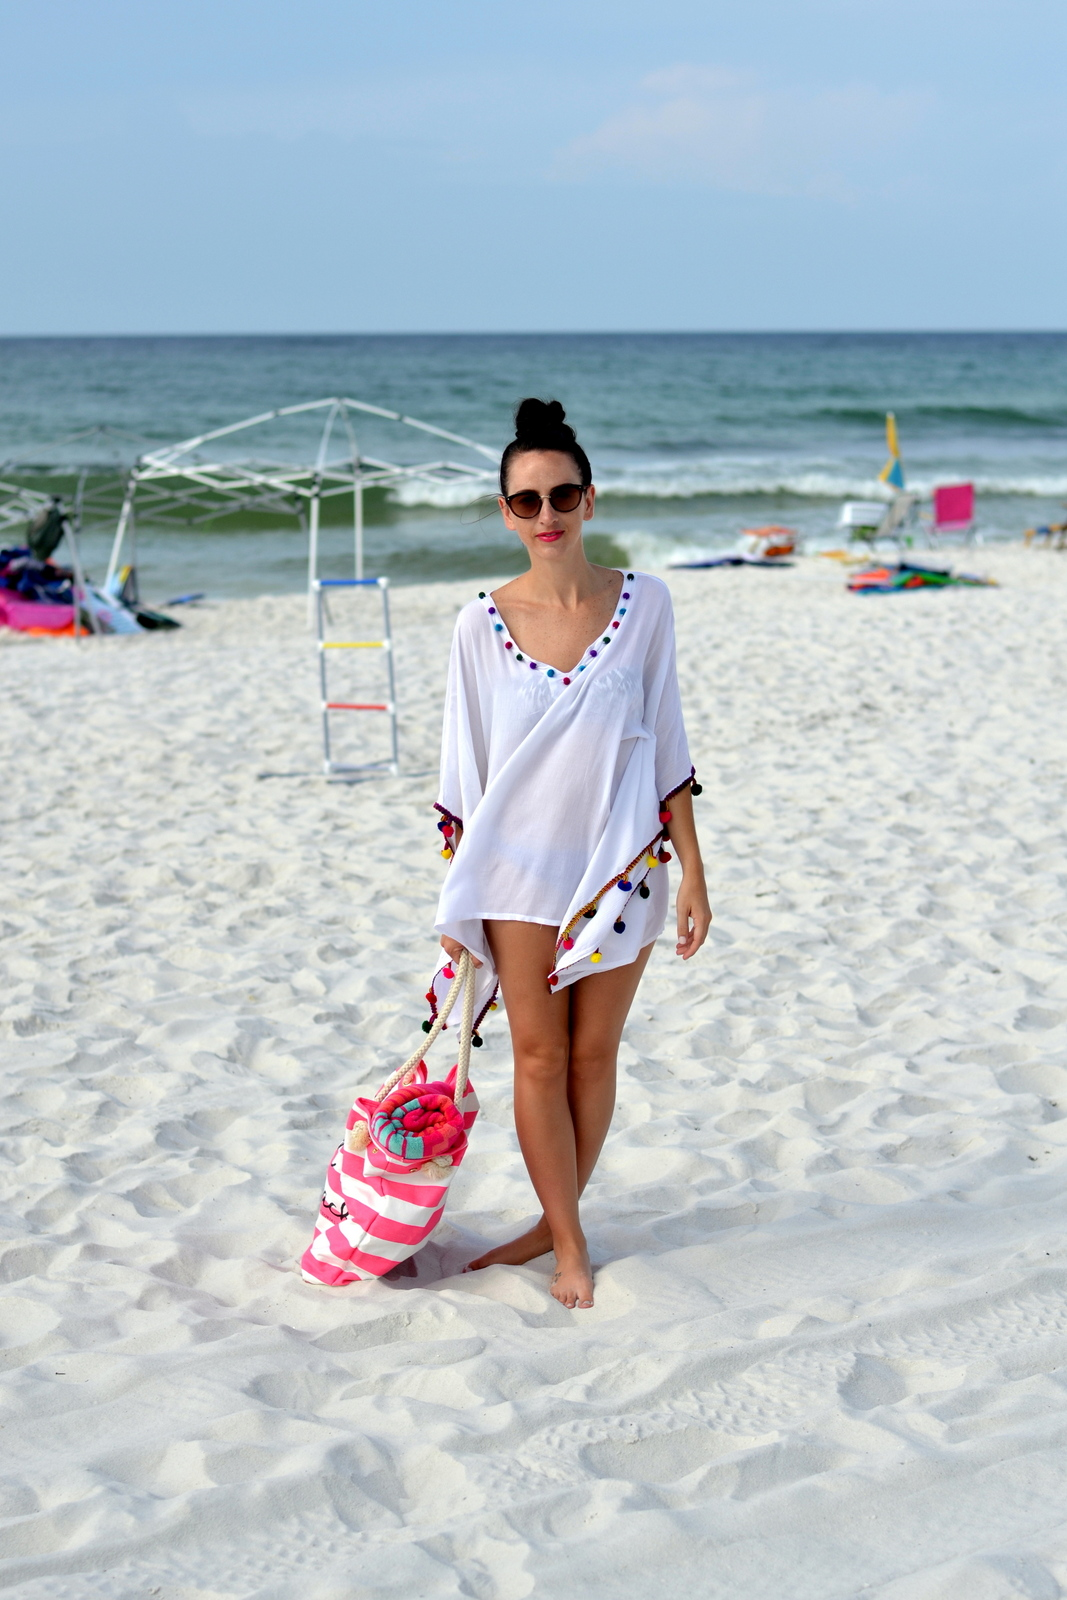 Beach coverup, sunnies and beach bag